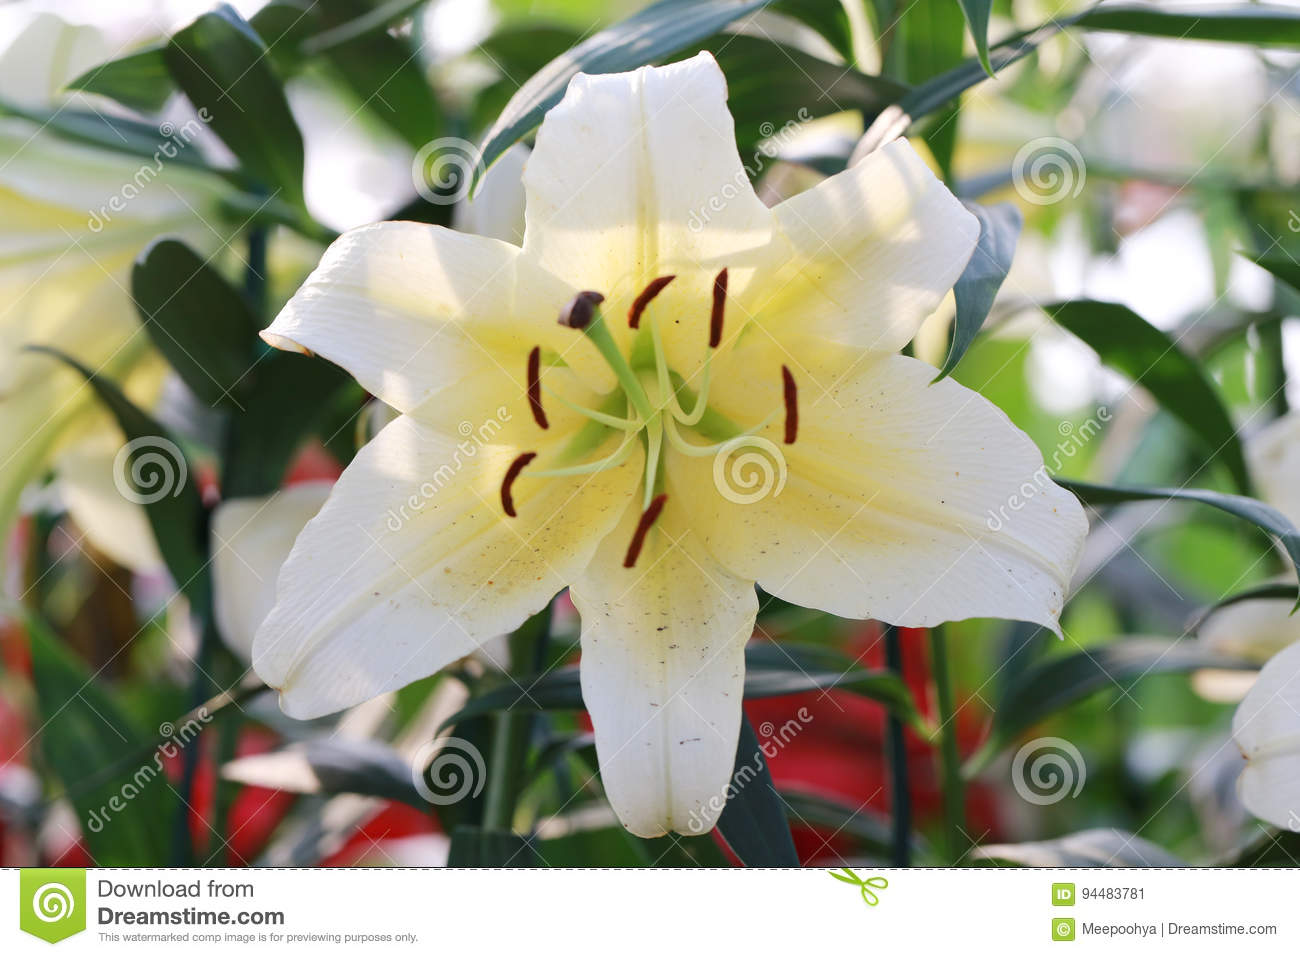 White mix yellow of lily flower are blooming stock image image of download white mix yellow of lily flower are blooming stock image image of winter mightylinksfo